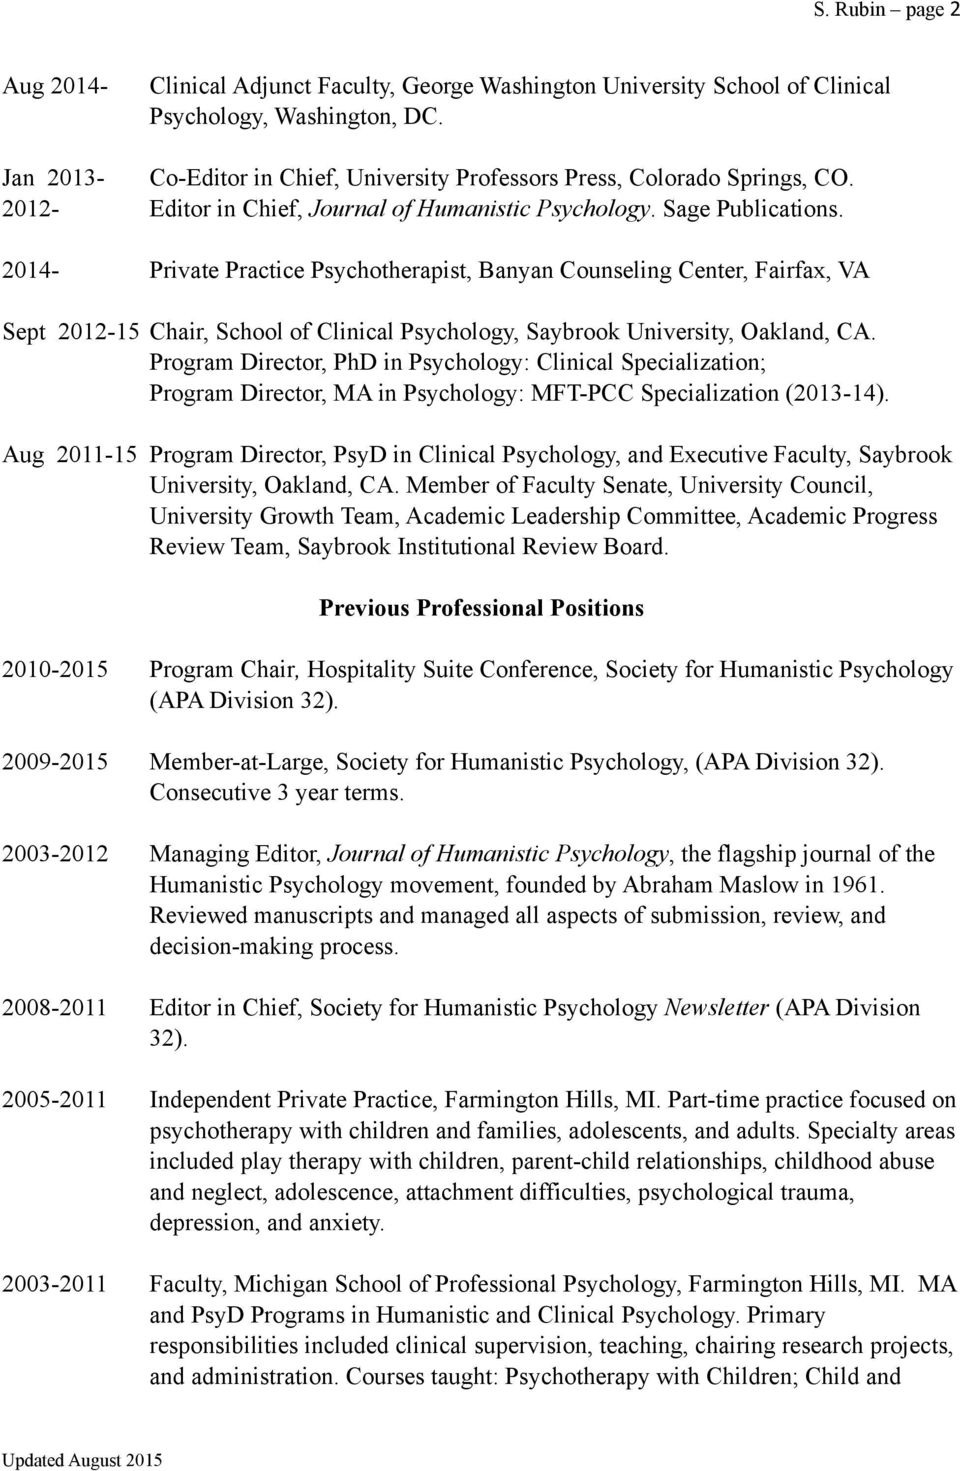 curriculum vitae shawn rubin psyd licensed clinical psychologist 2014 private practice psychotherapist banyan counseling center fairfax va sept 2012